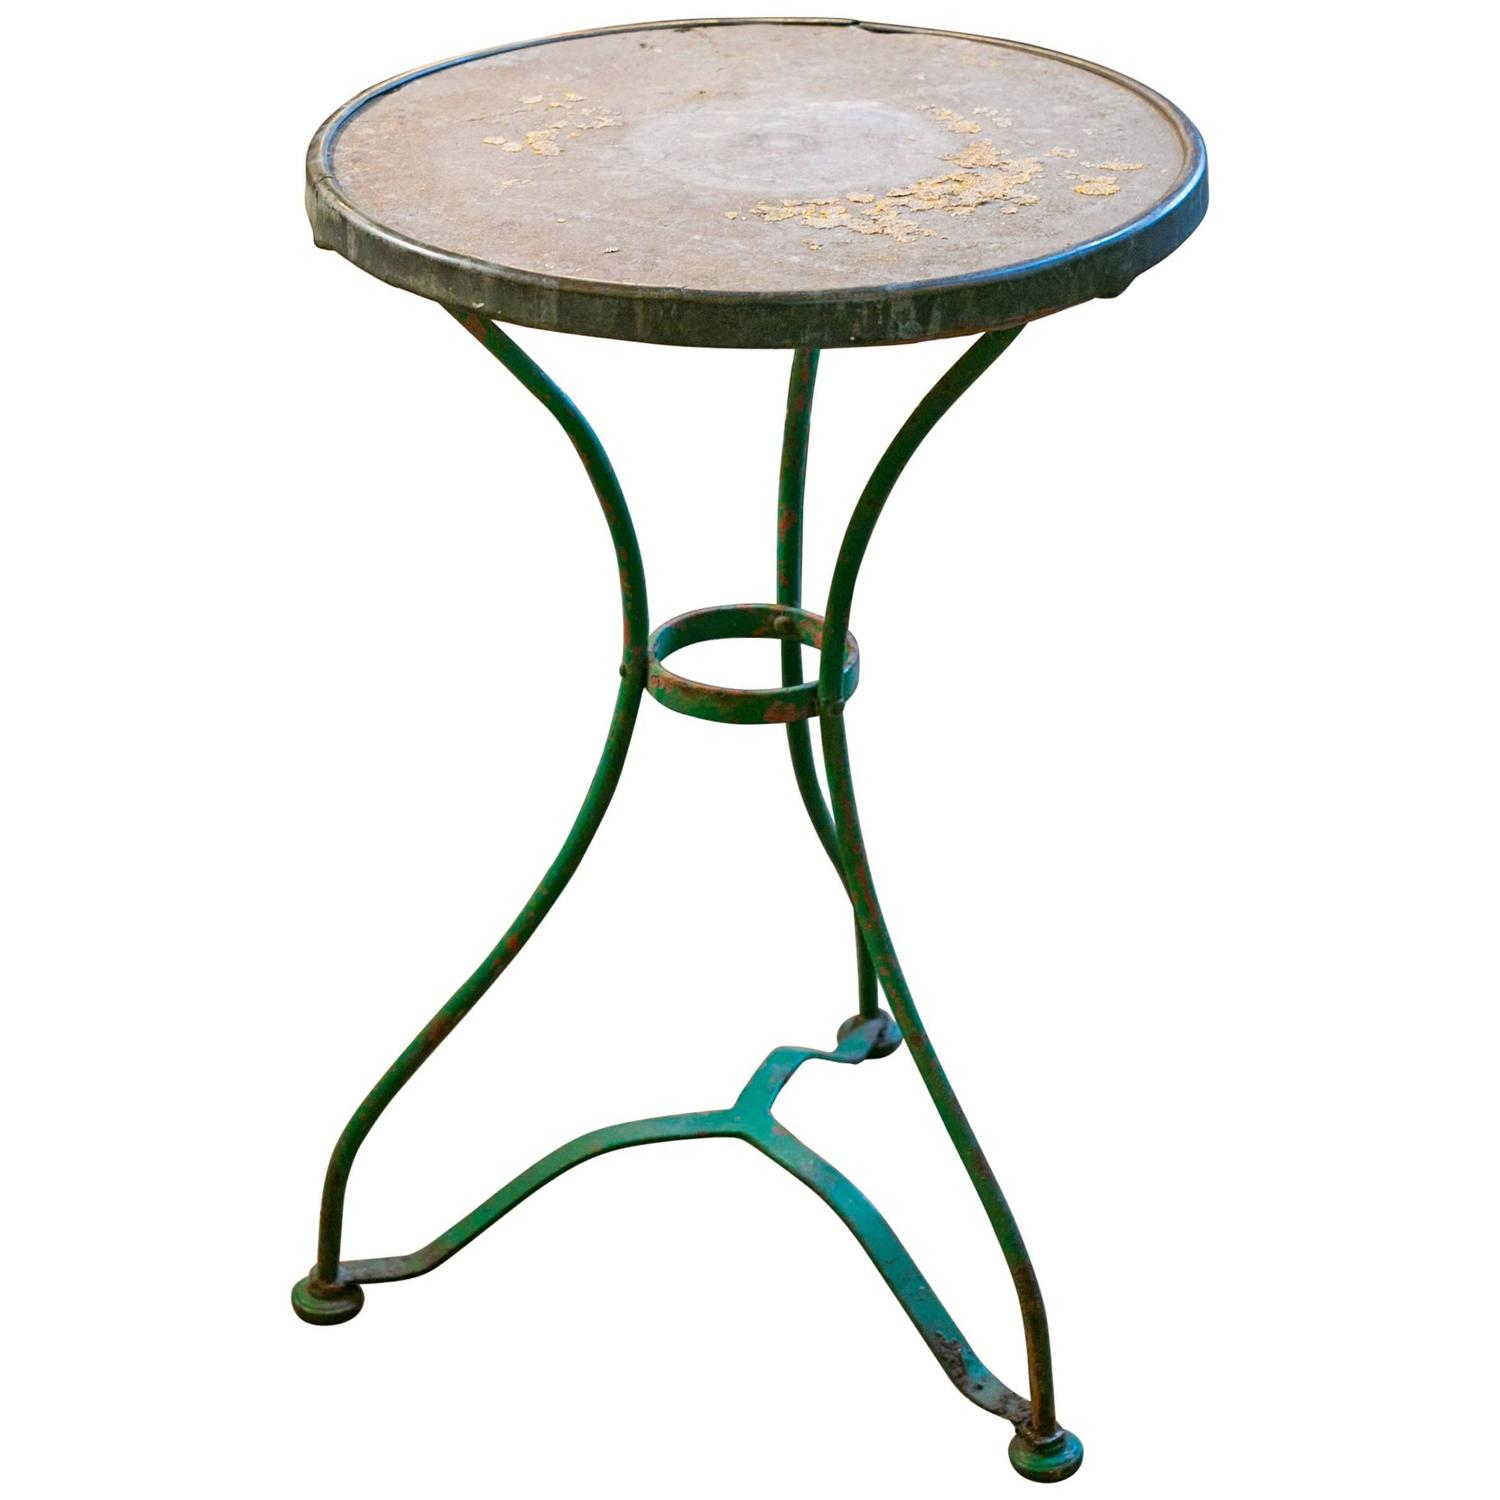 Vintage French Iron Bistro Table With Marble Top For Sale At 1stdibs